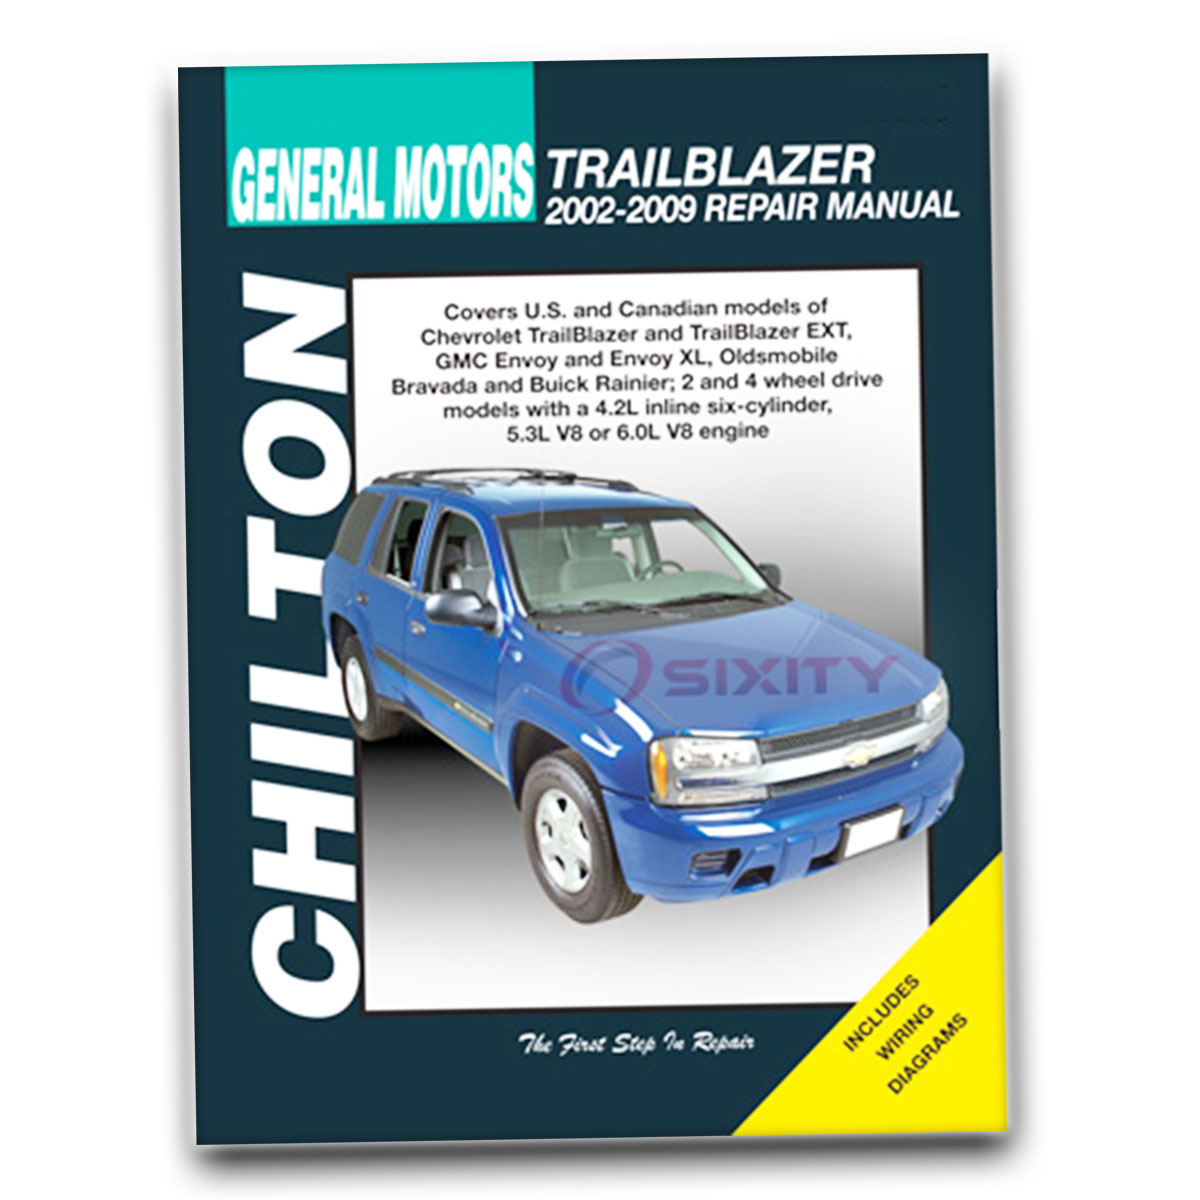 chevy trailblazer chilton repair manual ss ltz base north face ls rh ebay com 2007 Chevy Trailblazer Exterior Mirror 2007 chevrolet trailblazer ls owners manual